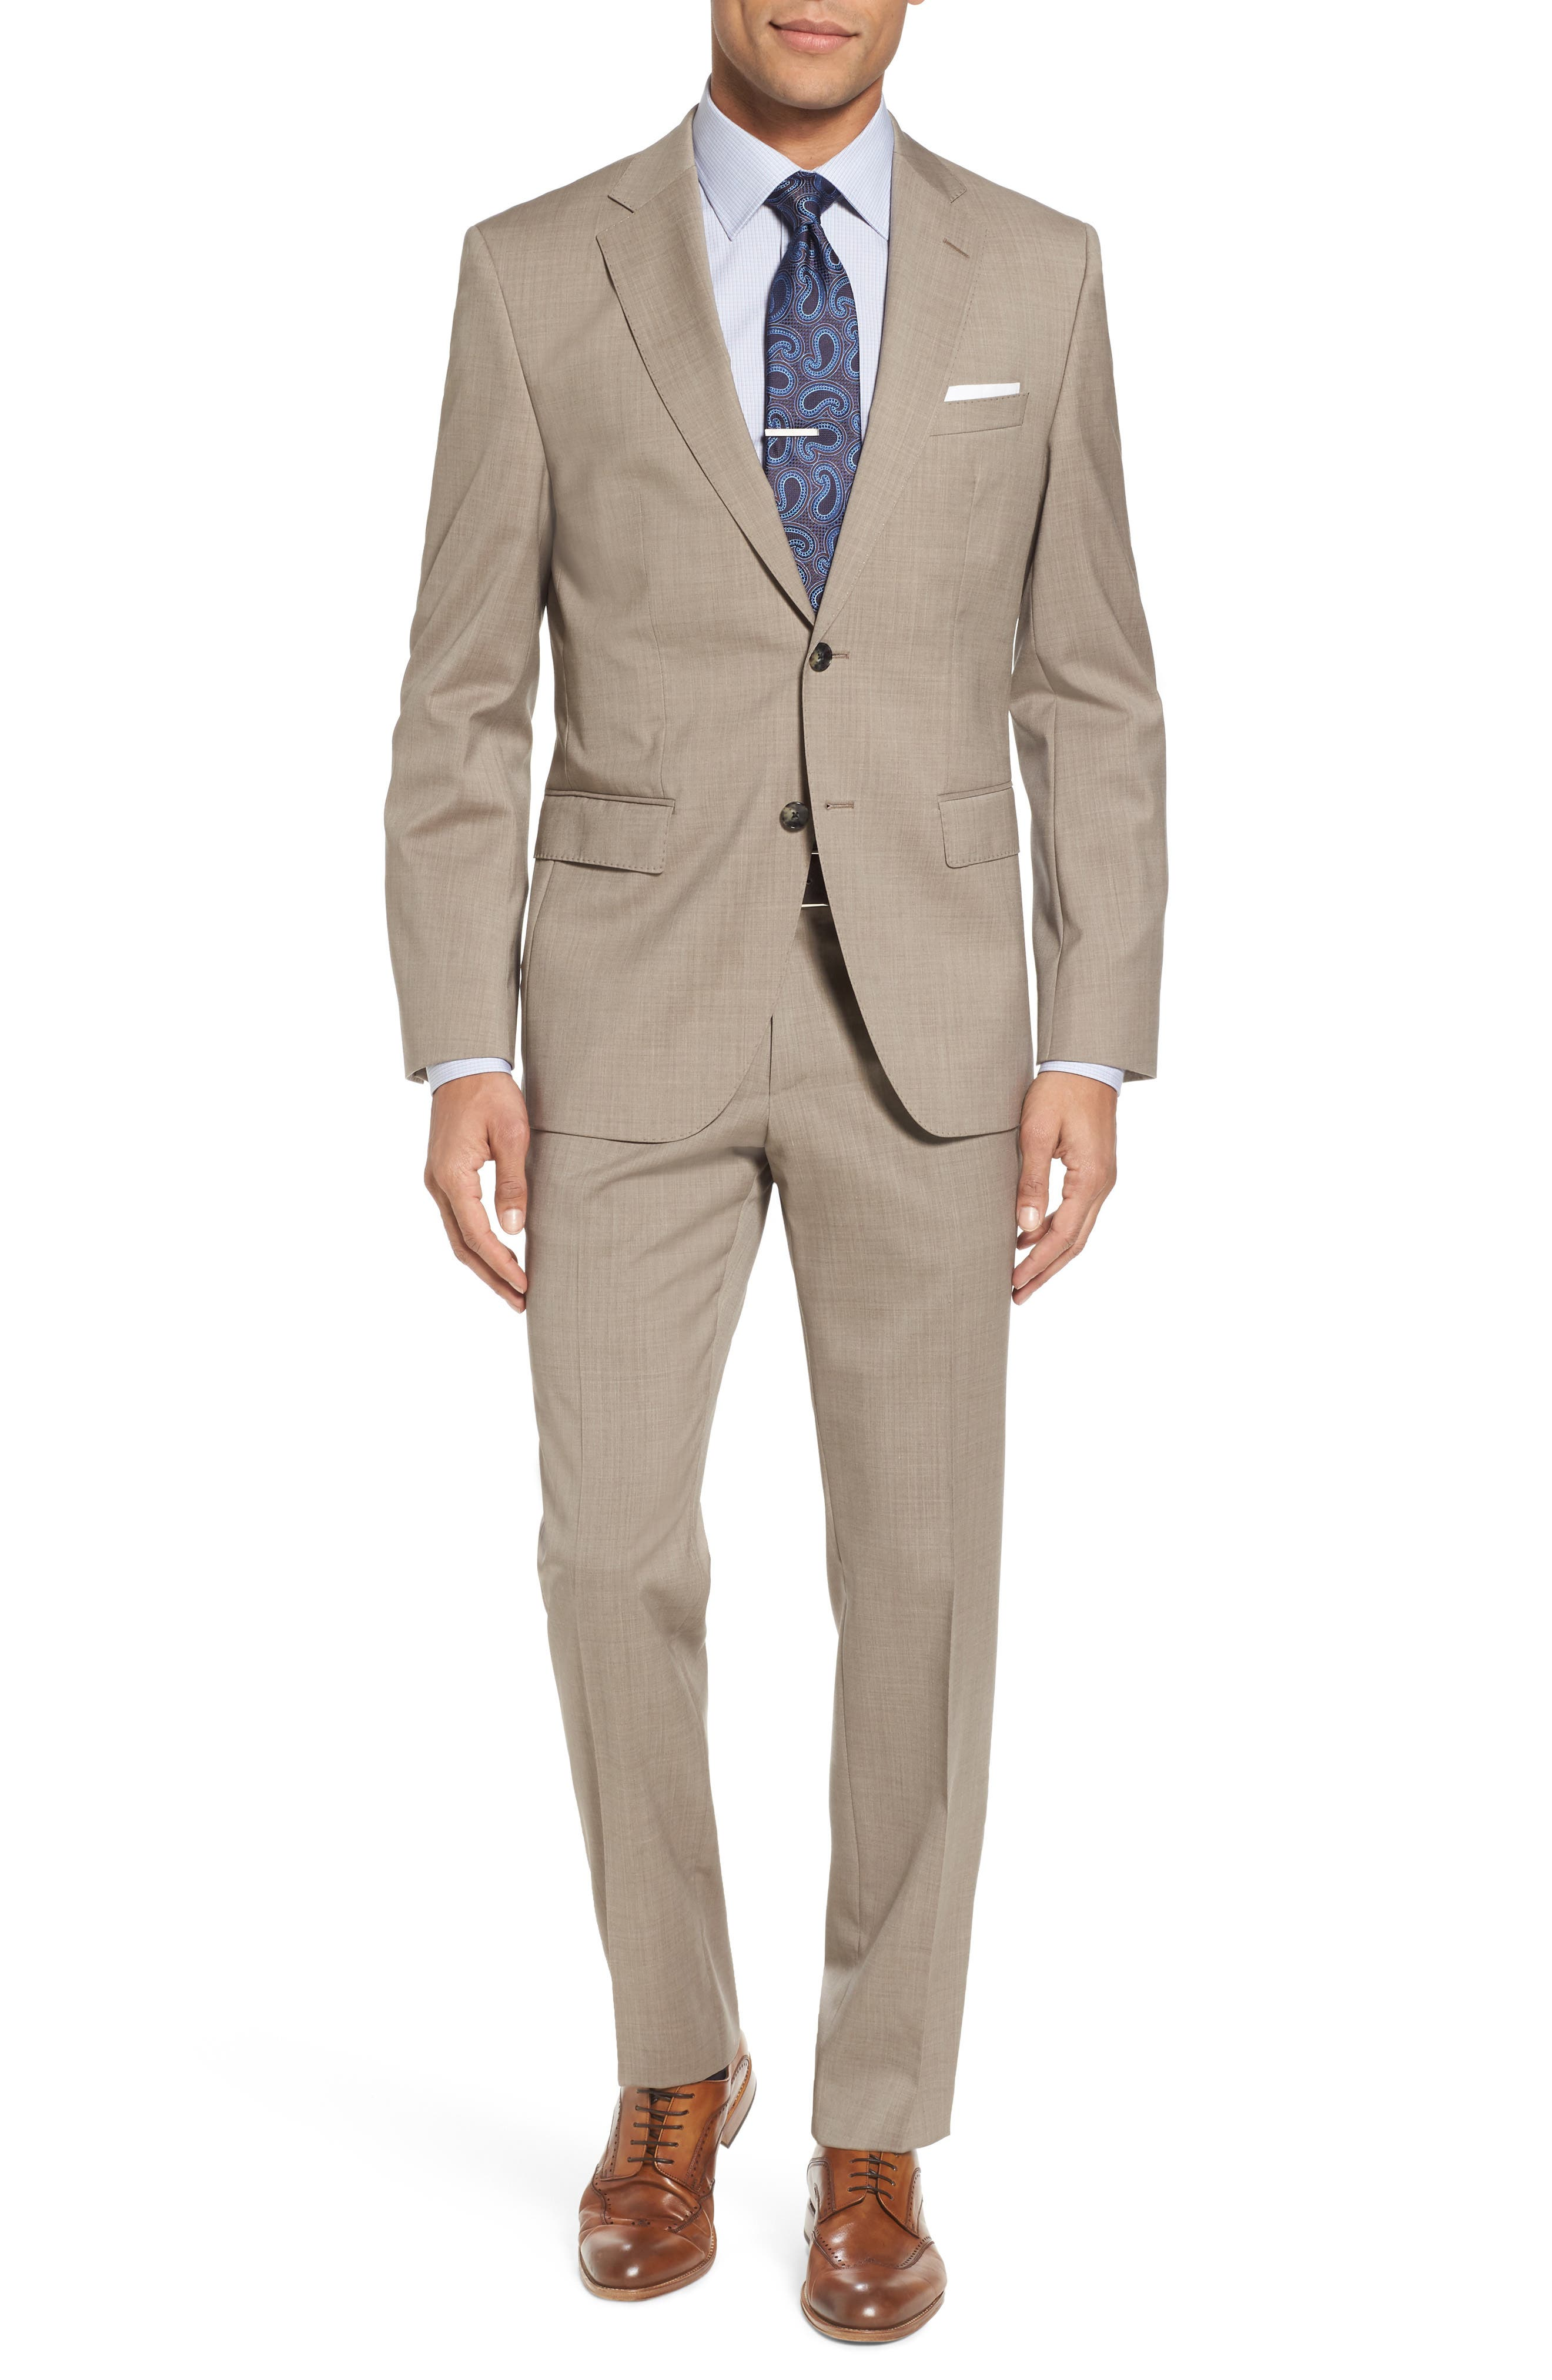 Johnstons/Lenon Classic Fit Solid Wool Suit,                         Main,                         color, Medium Beige